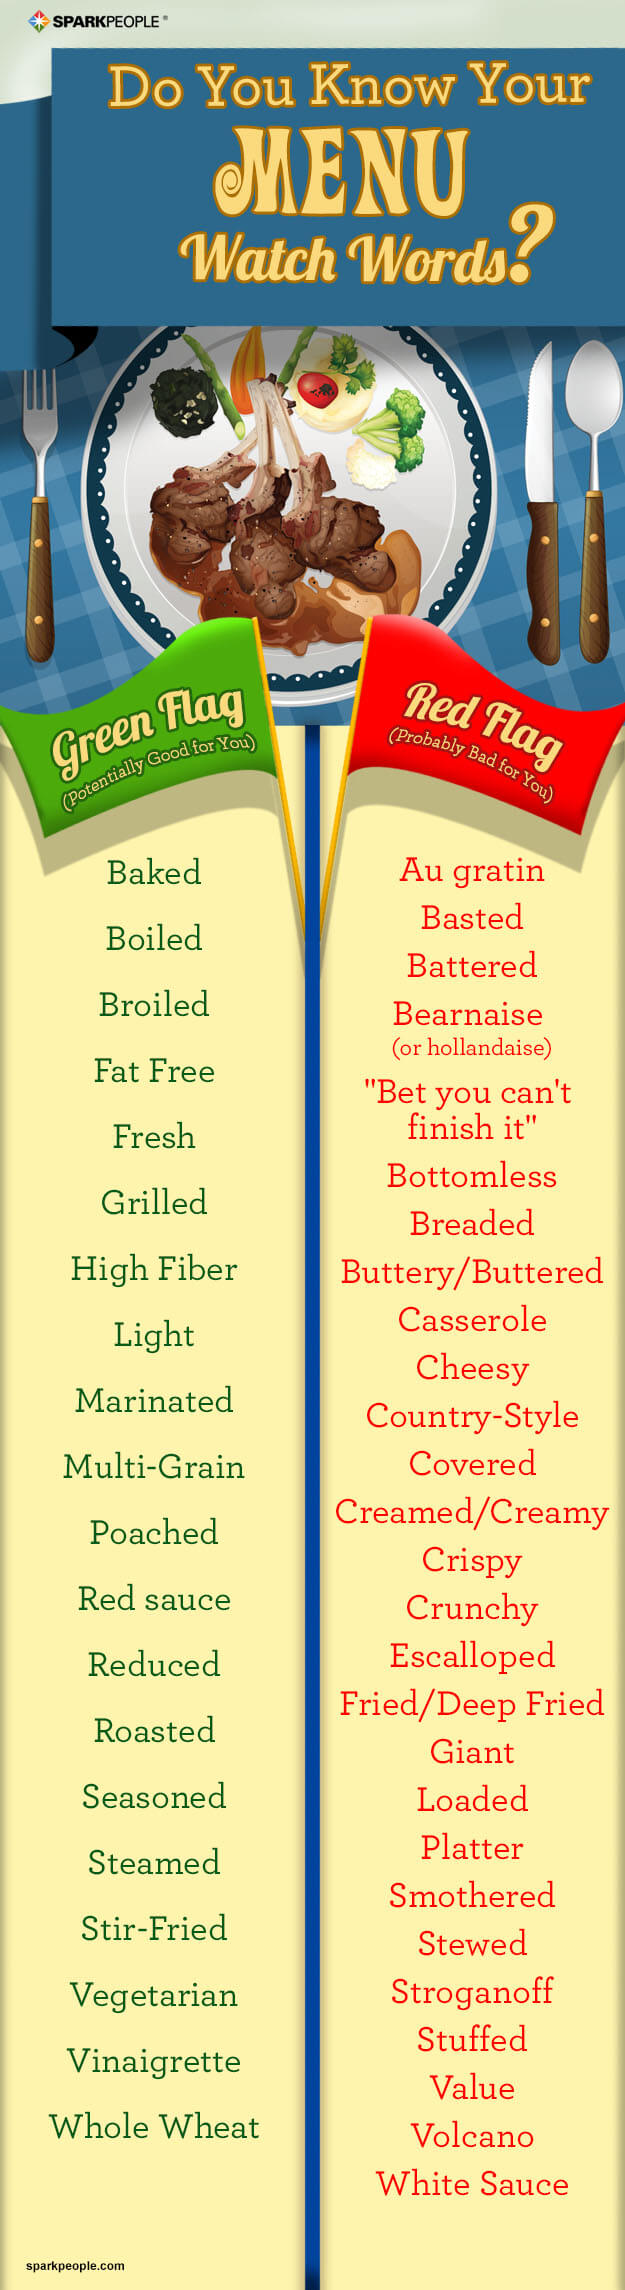 do you know your menu watch words sparkpeople